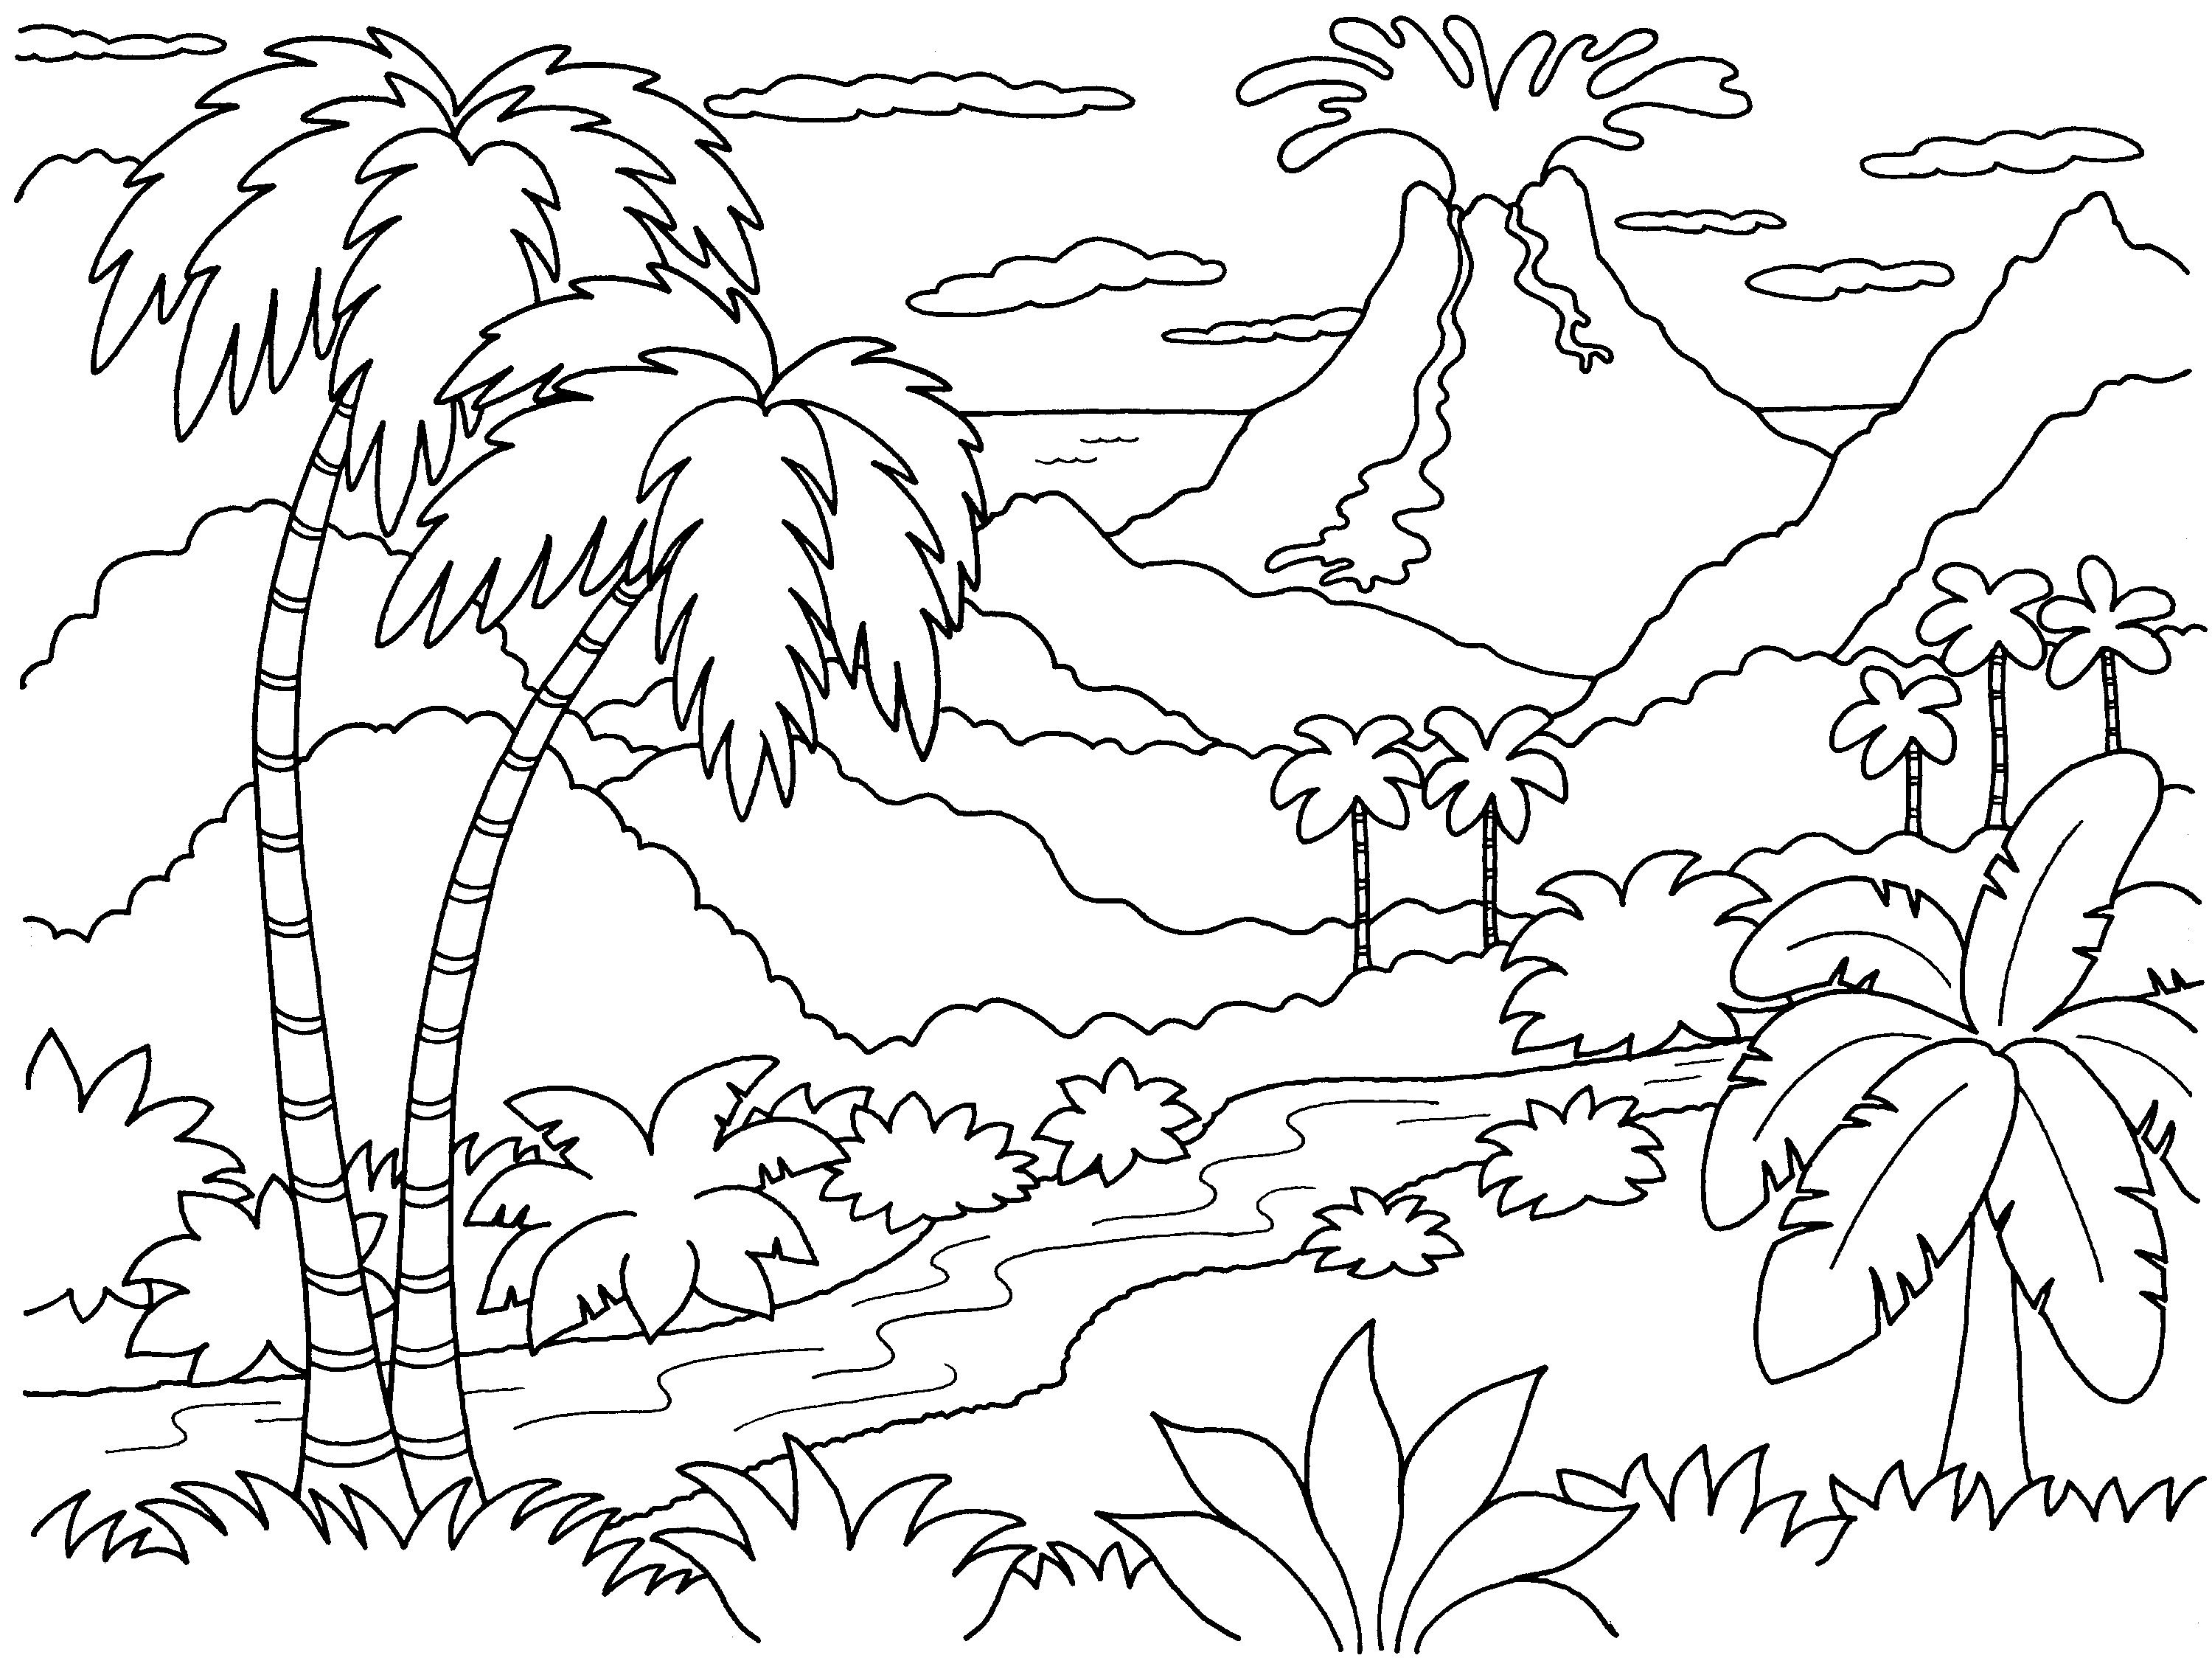 Painting pages to print - Nature Island Coloring Pages Print Coloring Pages Best Island